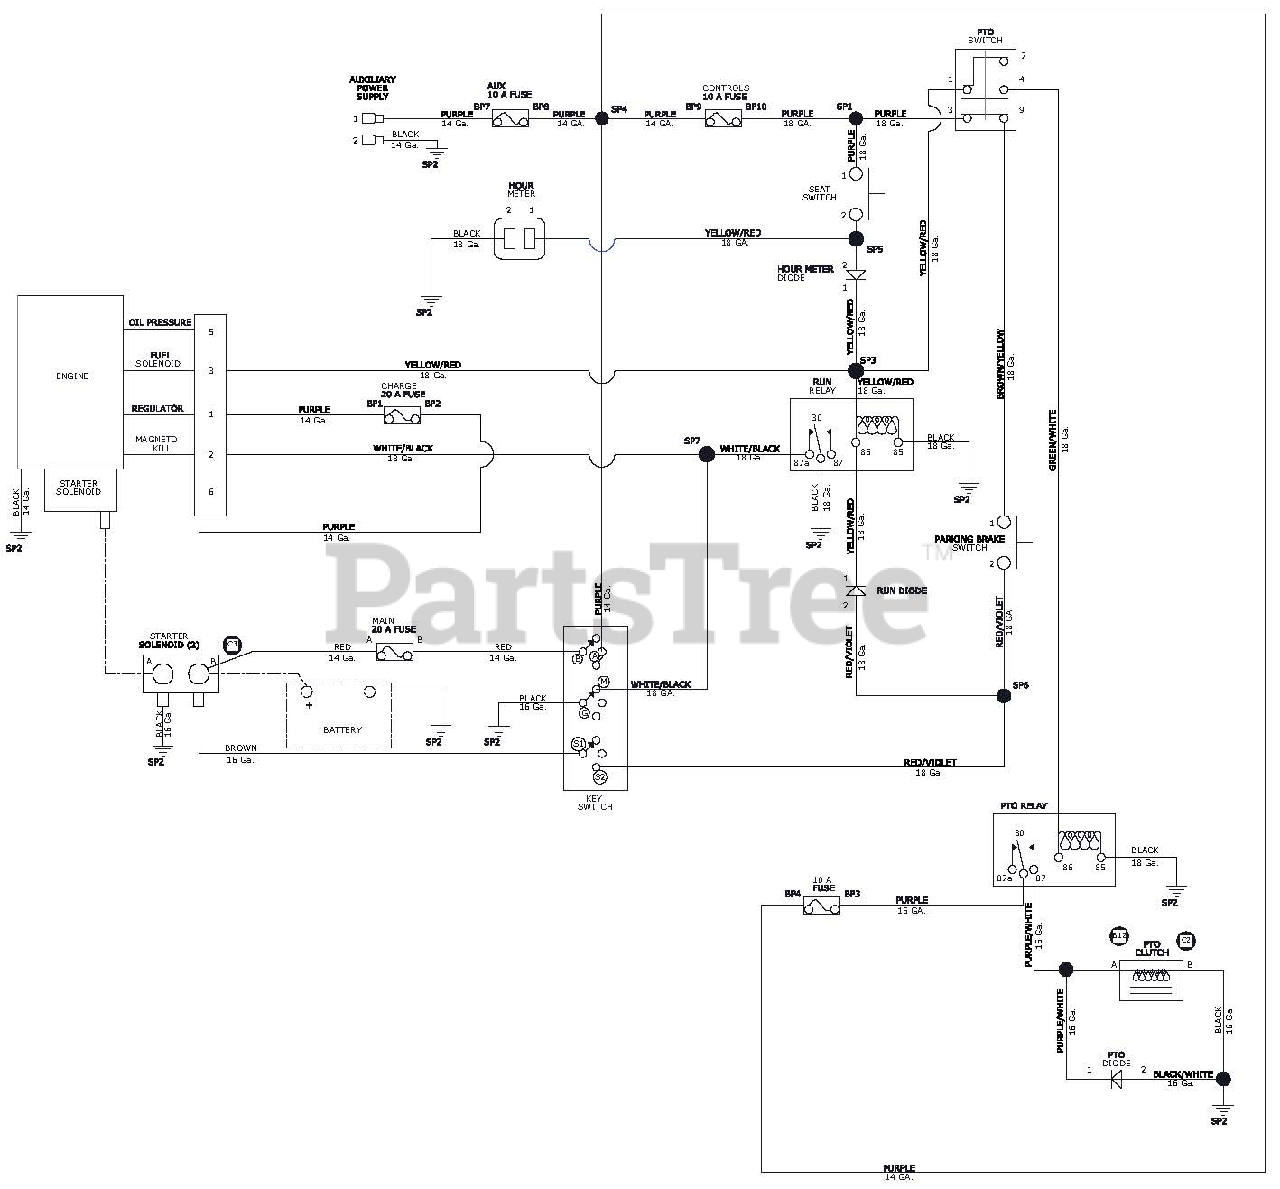 [SCHEMATICS_4CA]  23 Hp Kohler Wiring Diagram - Wiring Diagrams All | 25 Hp Kohler Wiring Diagram Free Picture |  | elaariela.de